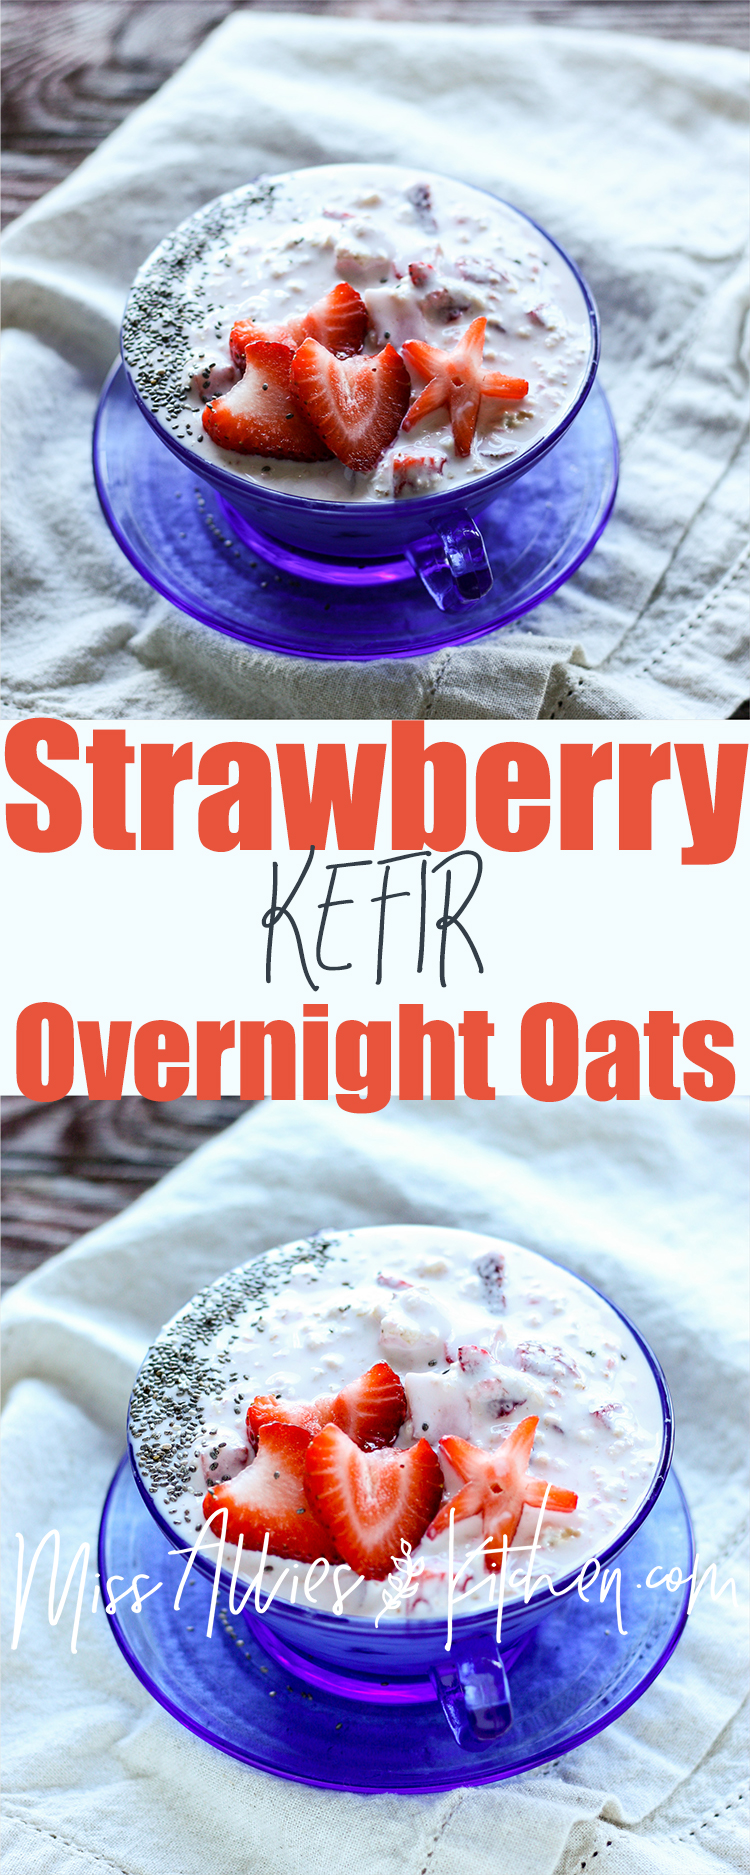 Strawberry Kefir Overnight Oats - a probiotic rich breakfast!